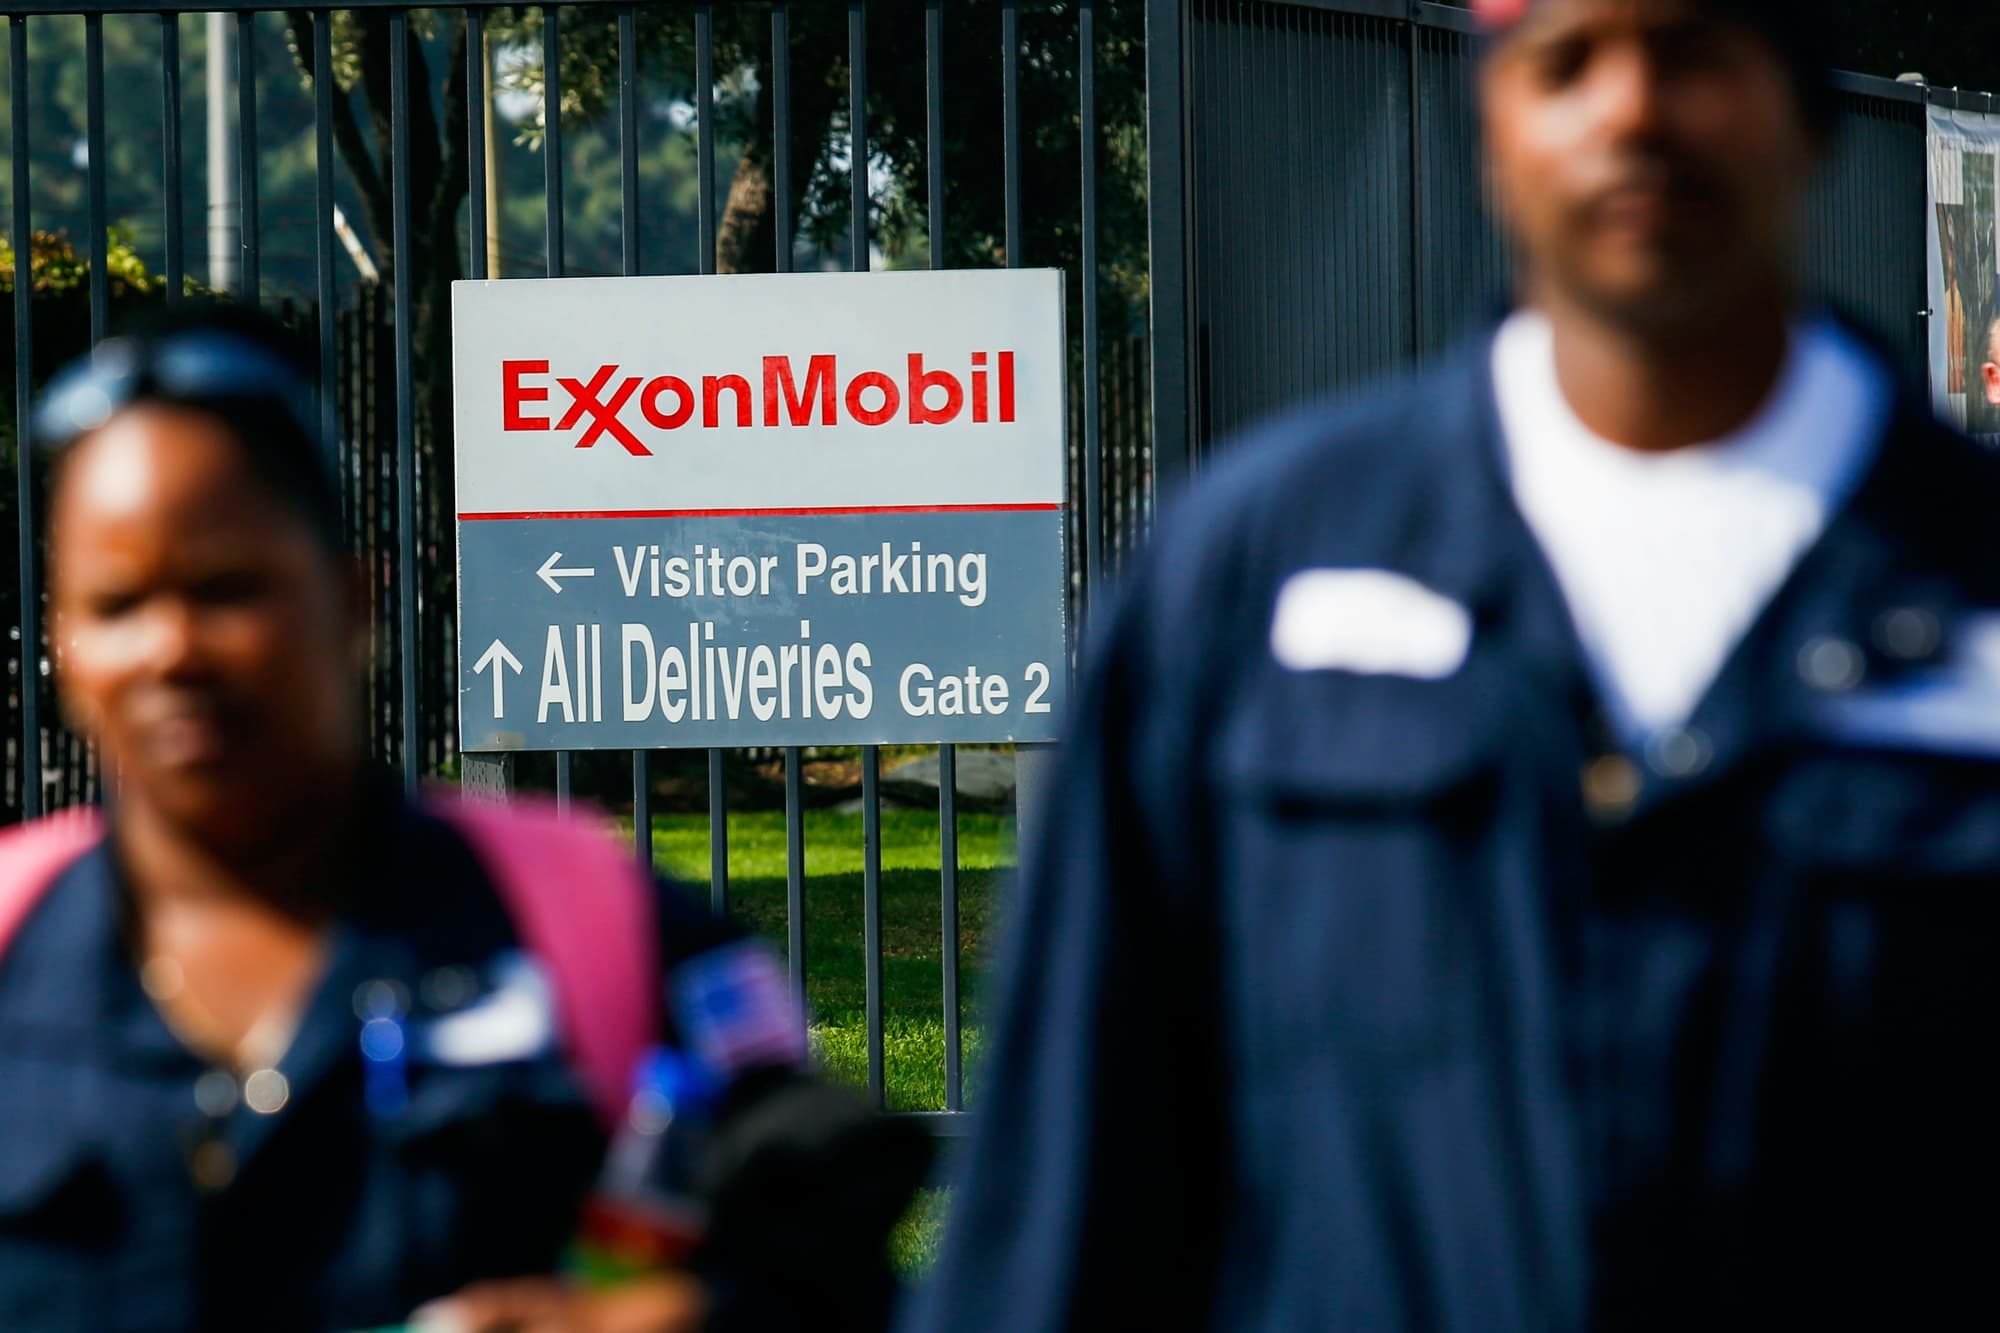 Exxon Mobil to invest $35 billion in US over 5 years, citing